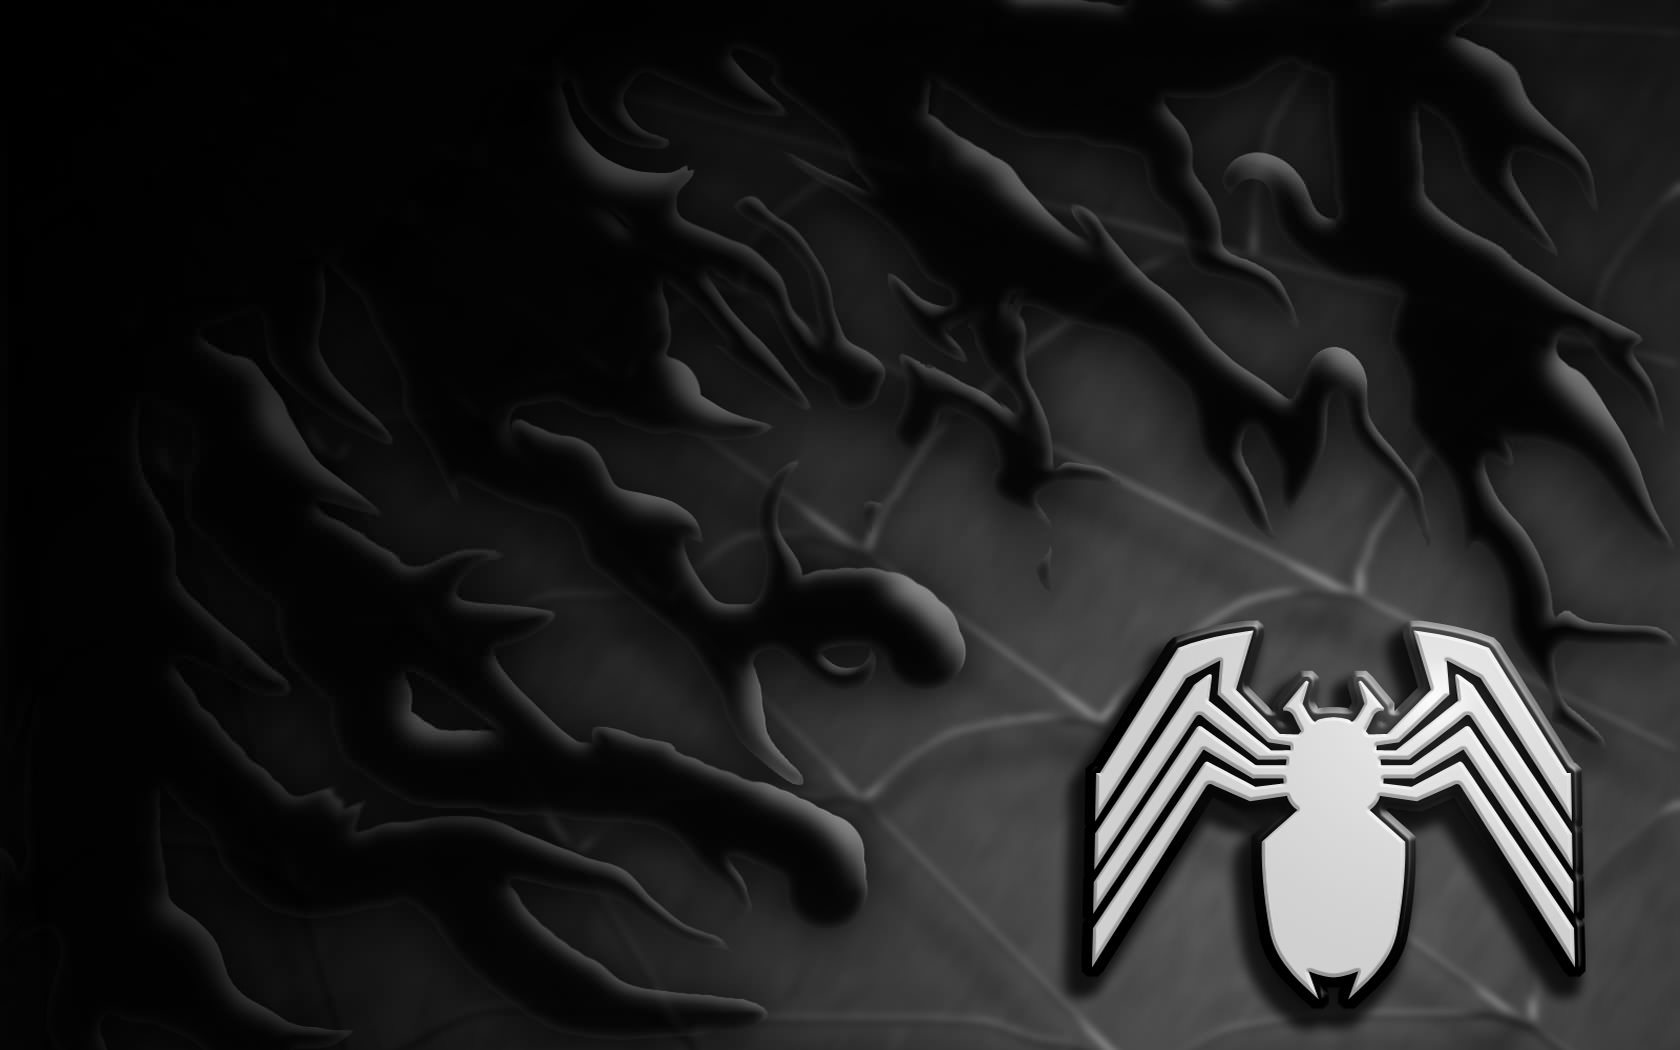 venom symbol wallpaper 1680x1050